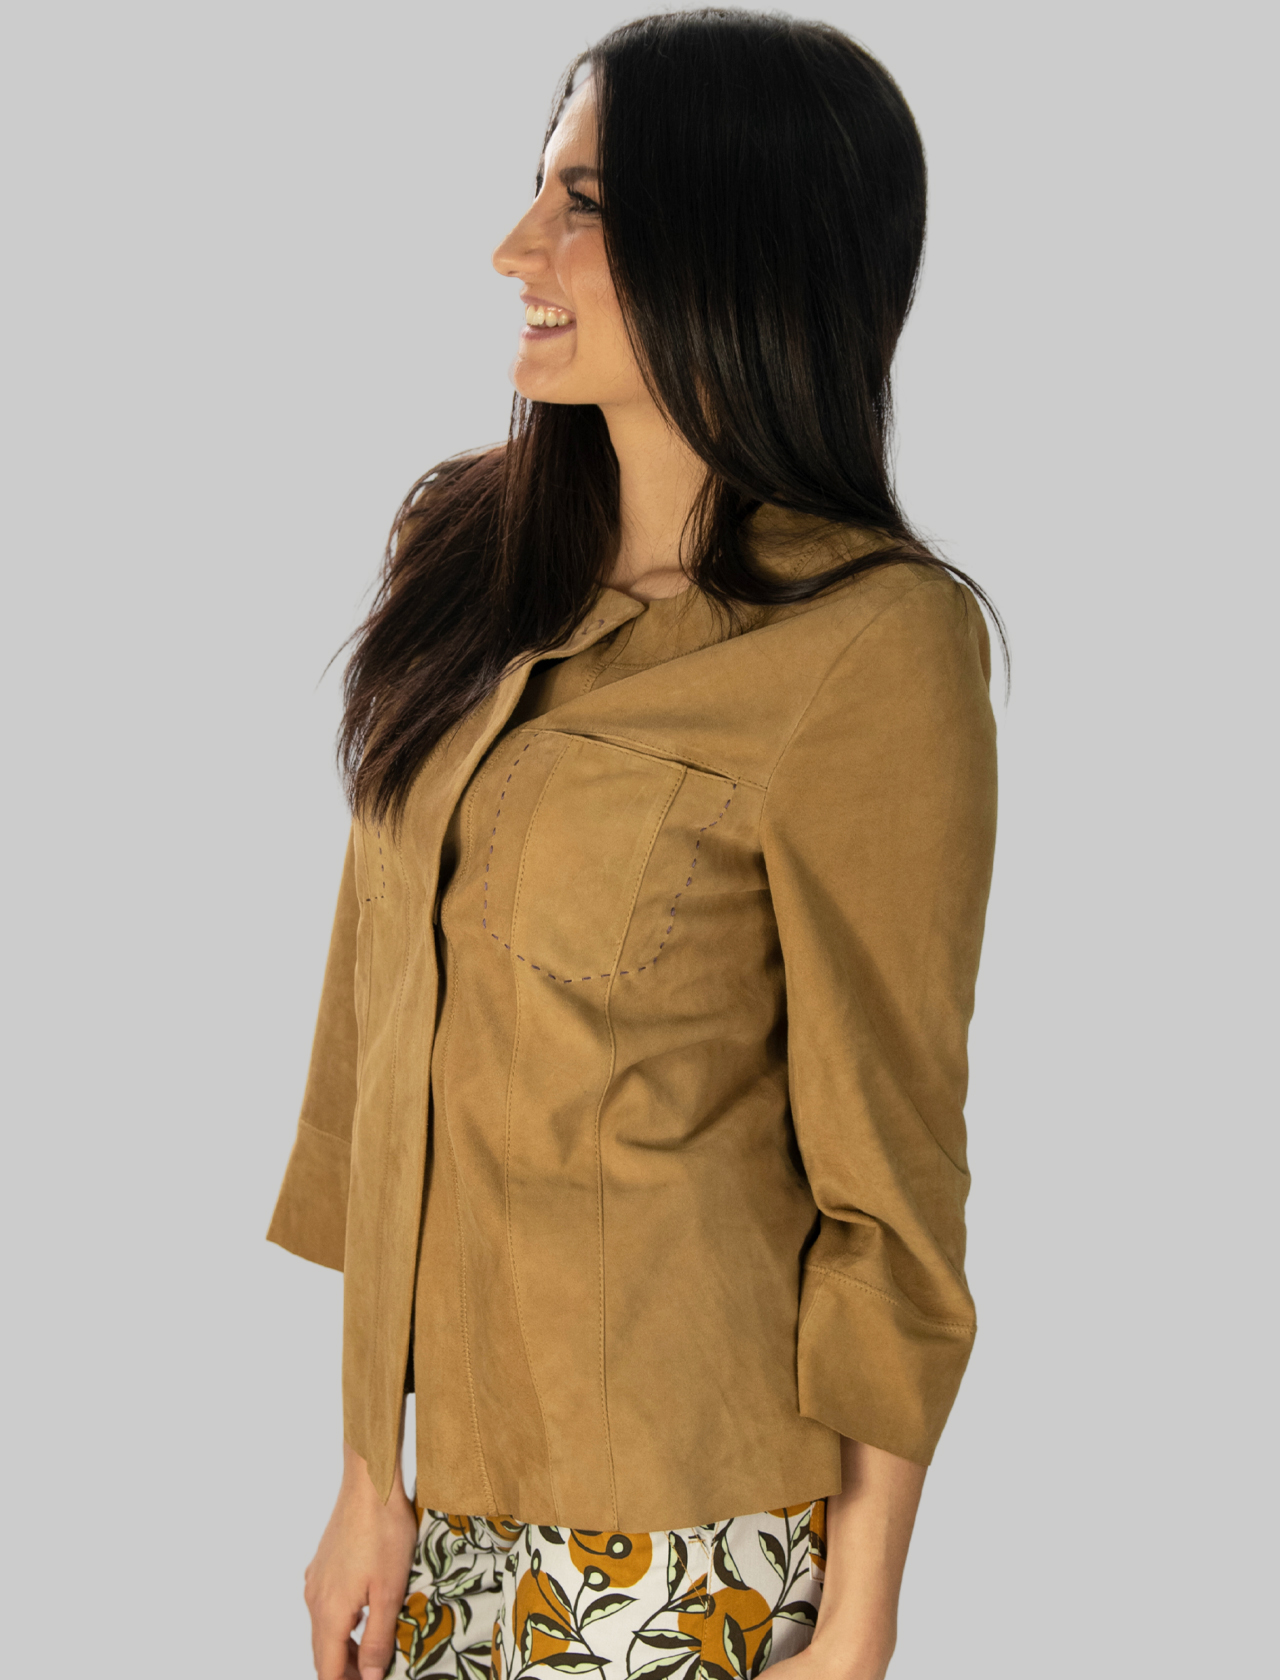 Women's Clothing Soft Suede Jacket in Beige Suede Maliparmi |  | JC01210145012021